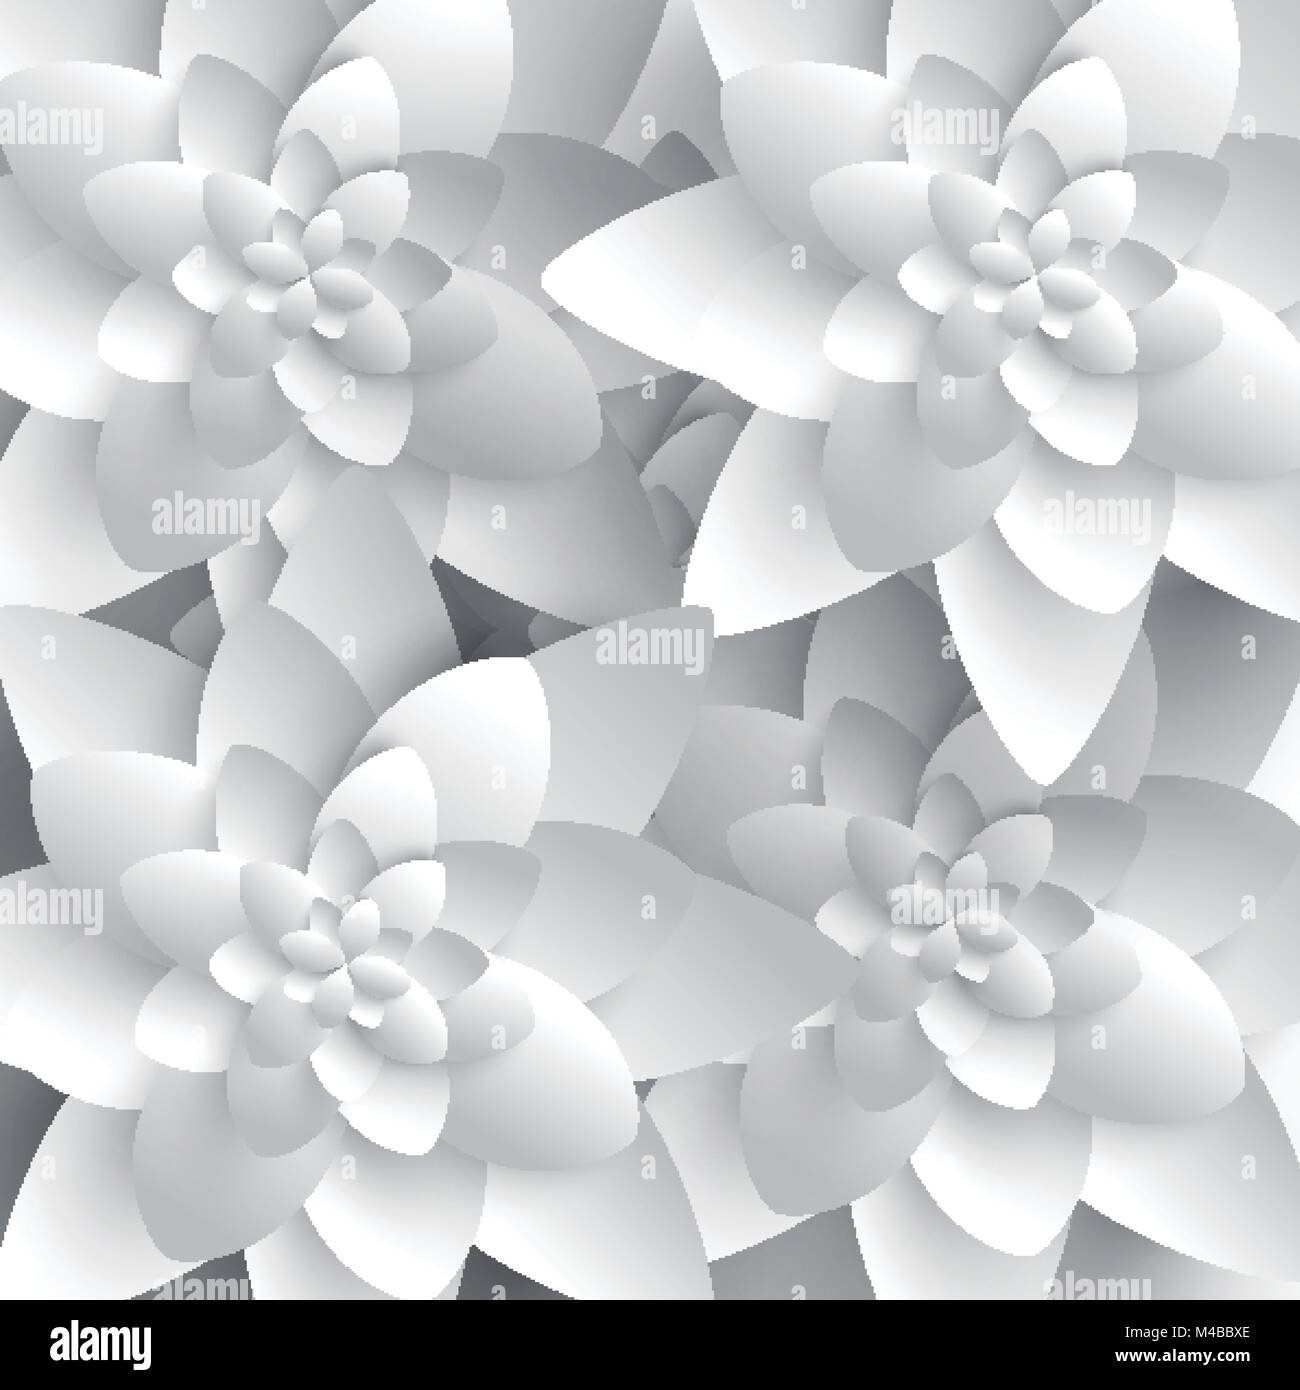 Abstract 3d Paper Flower Stock Vector Art Illustration Vector